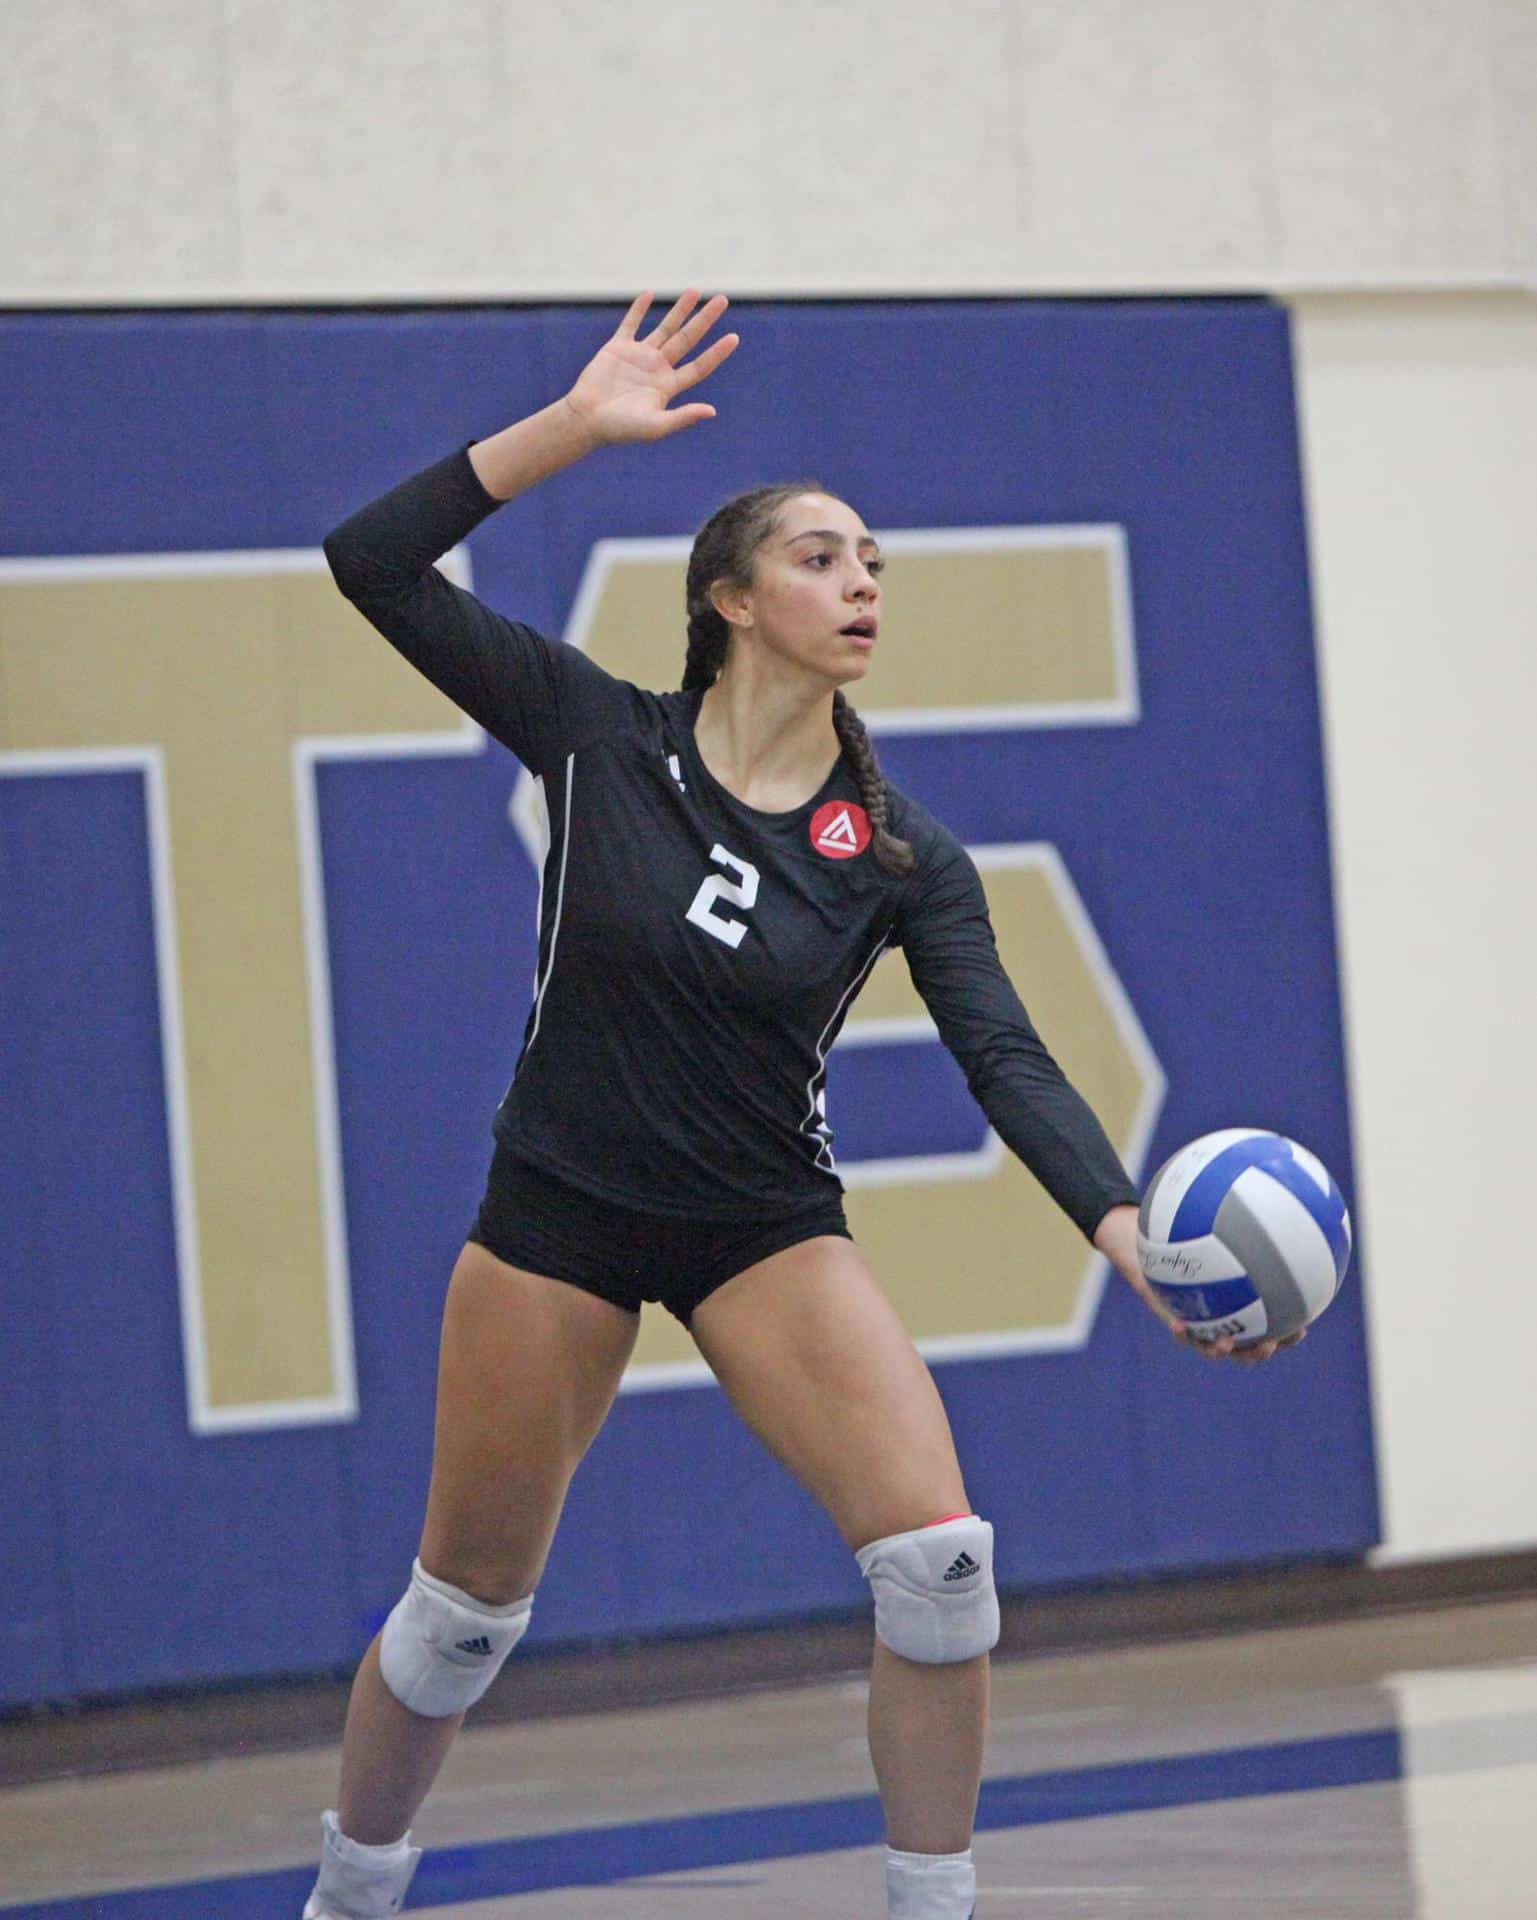 VB - Celena Davison (photo by Rob Garcia)